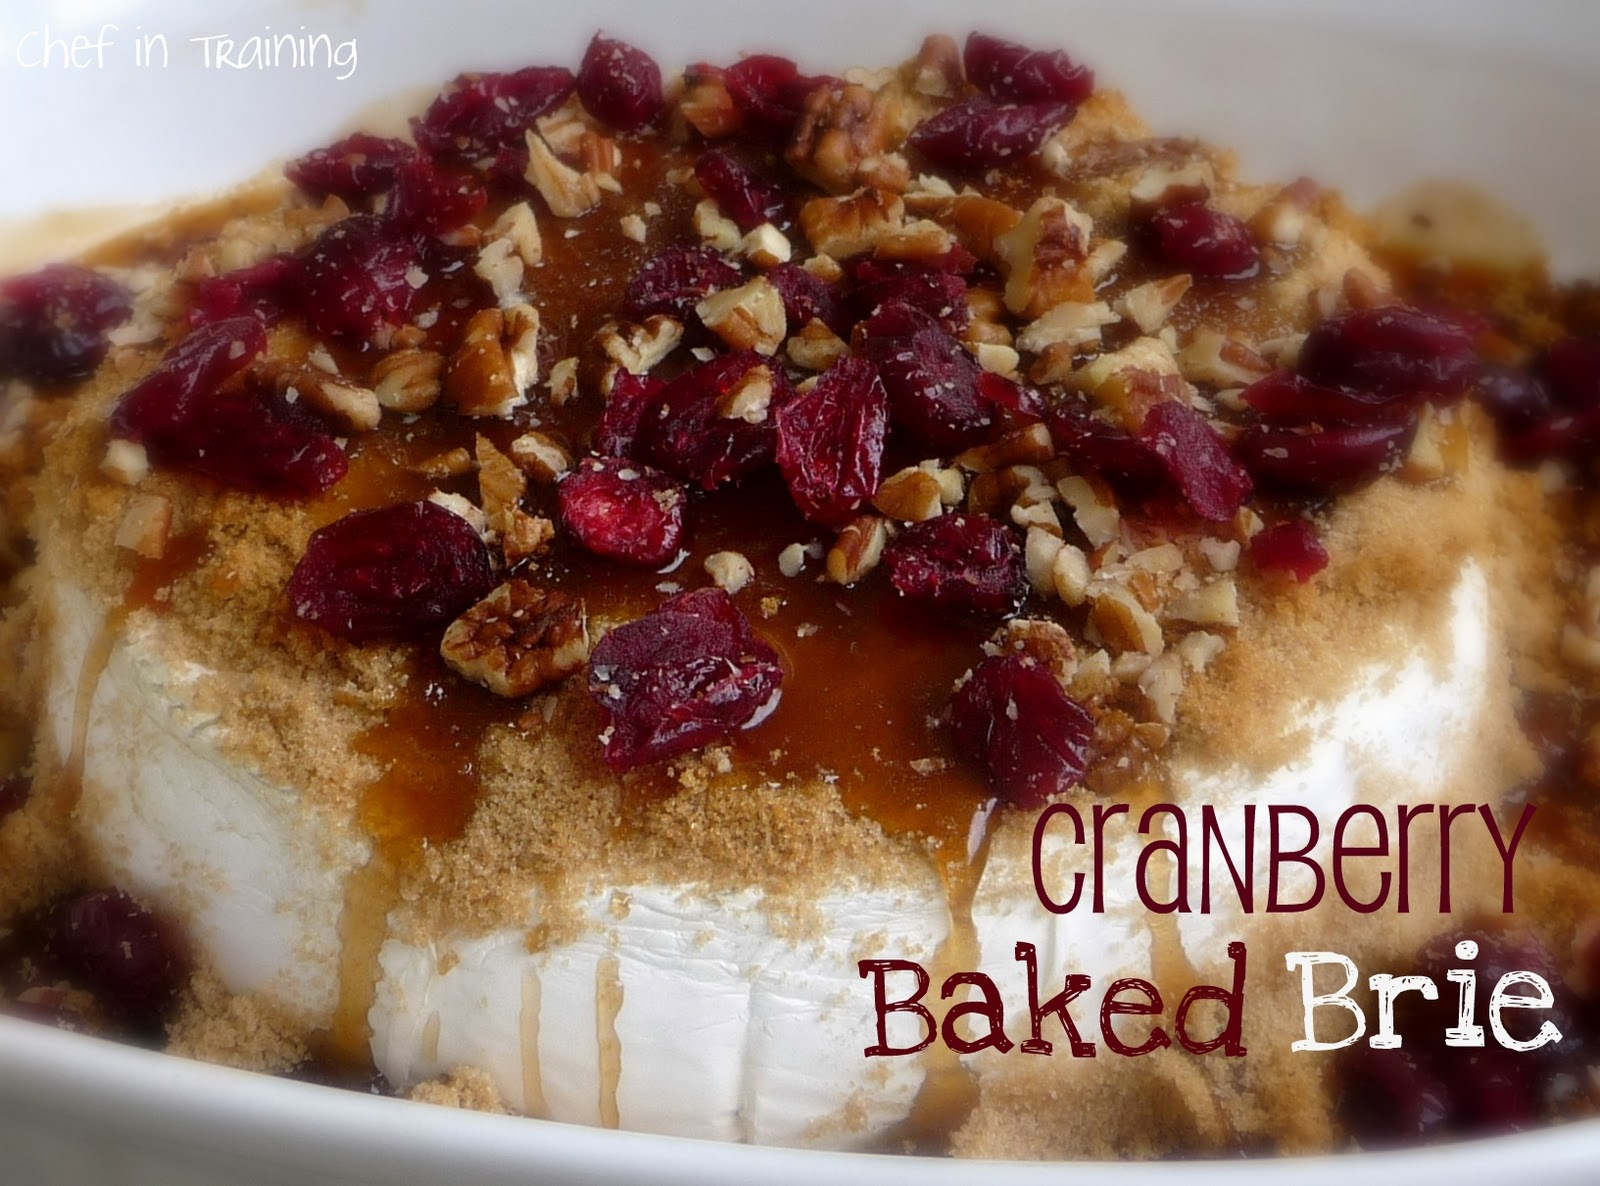 Cranberry Baked Brie - Chef in Training